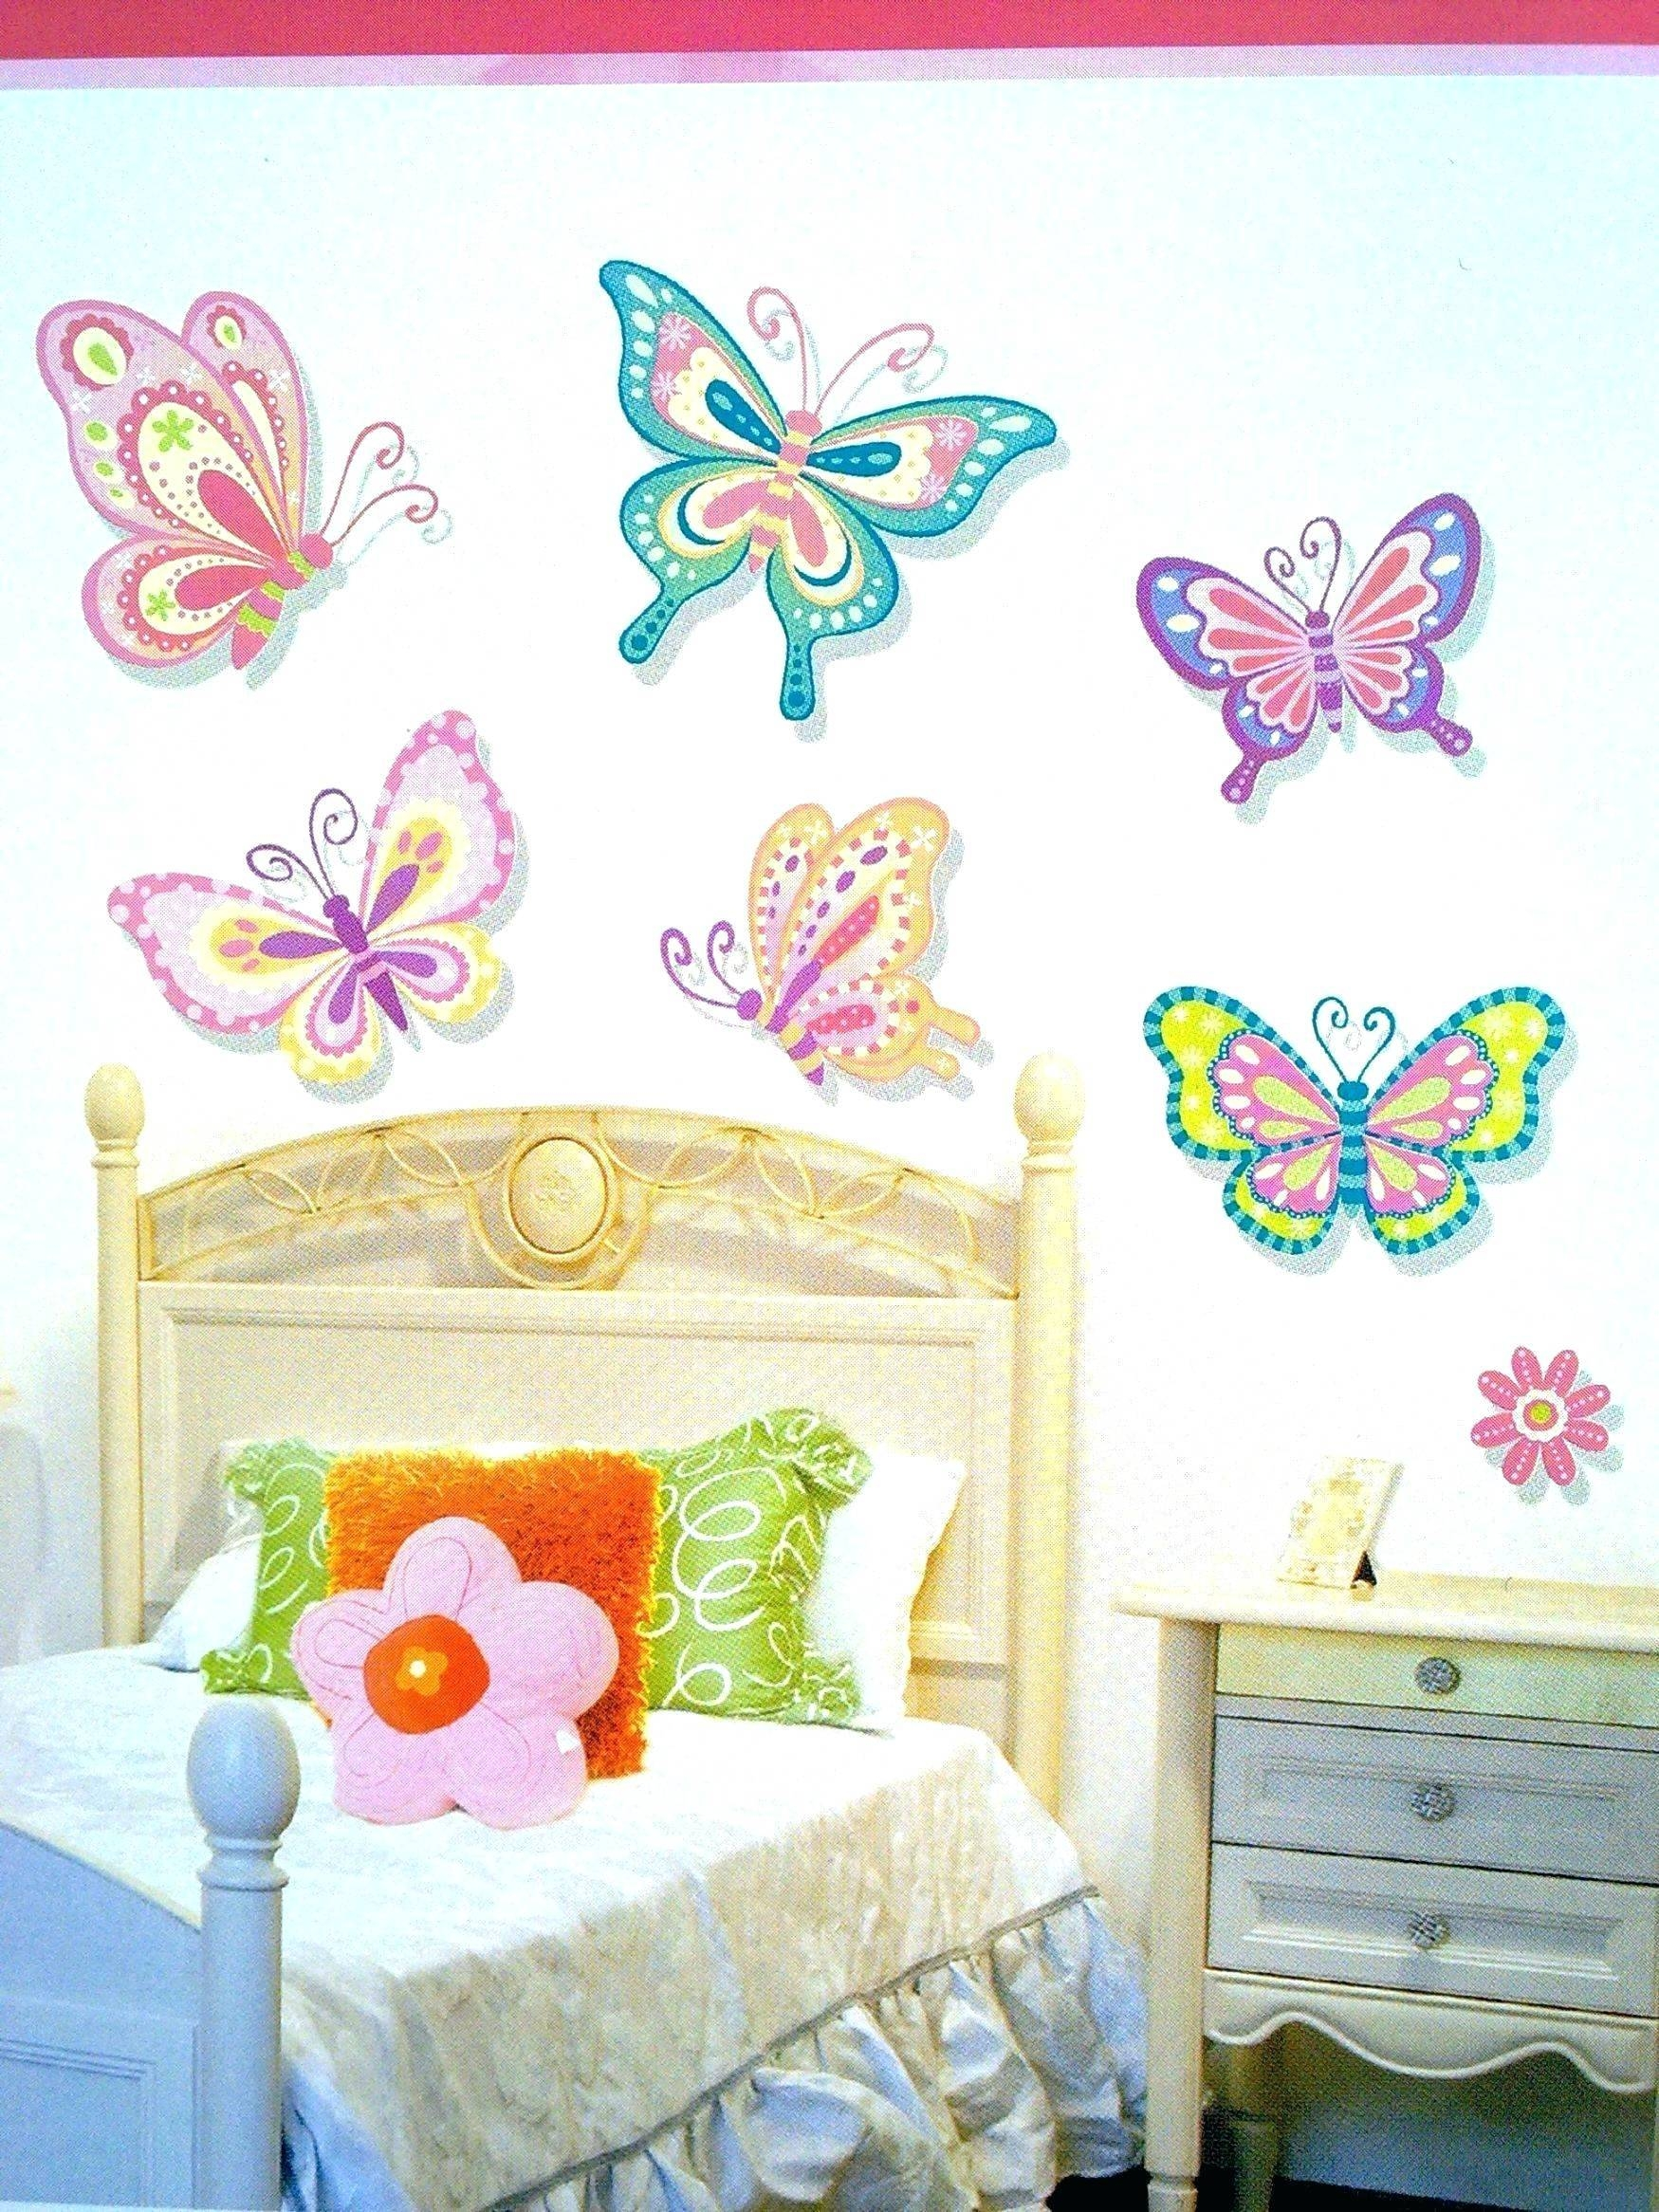 3D Butterfly Wall Decal Stickers Picture More Detailed Picture Regarding Most Current White 3D Butterfly Wall Art (Gallery 14 of 20)